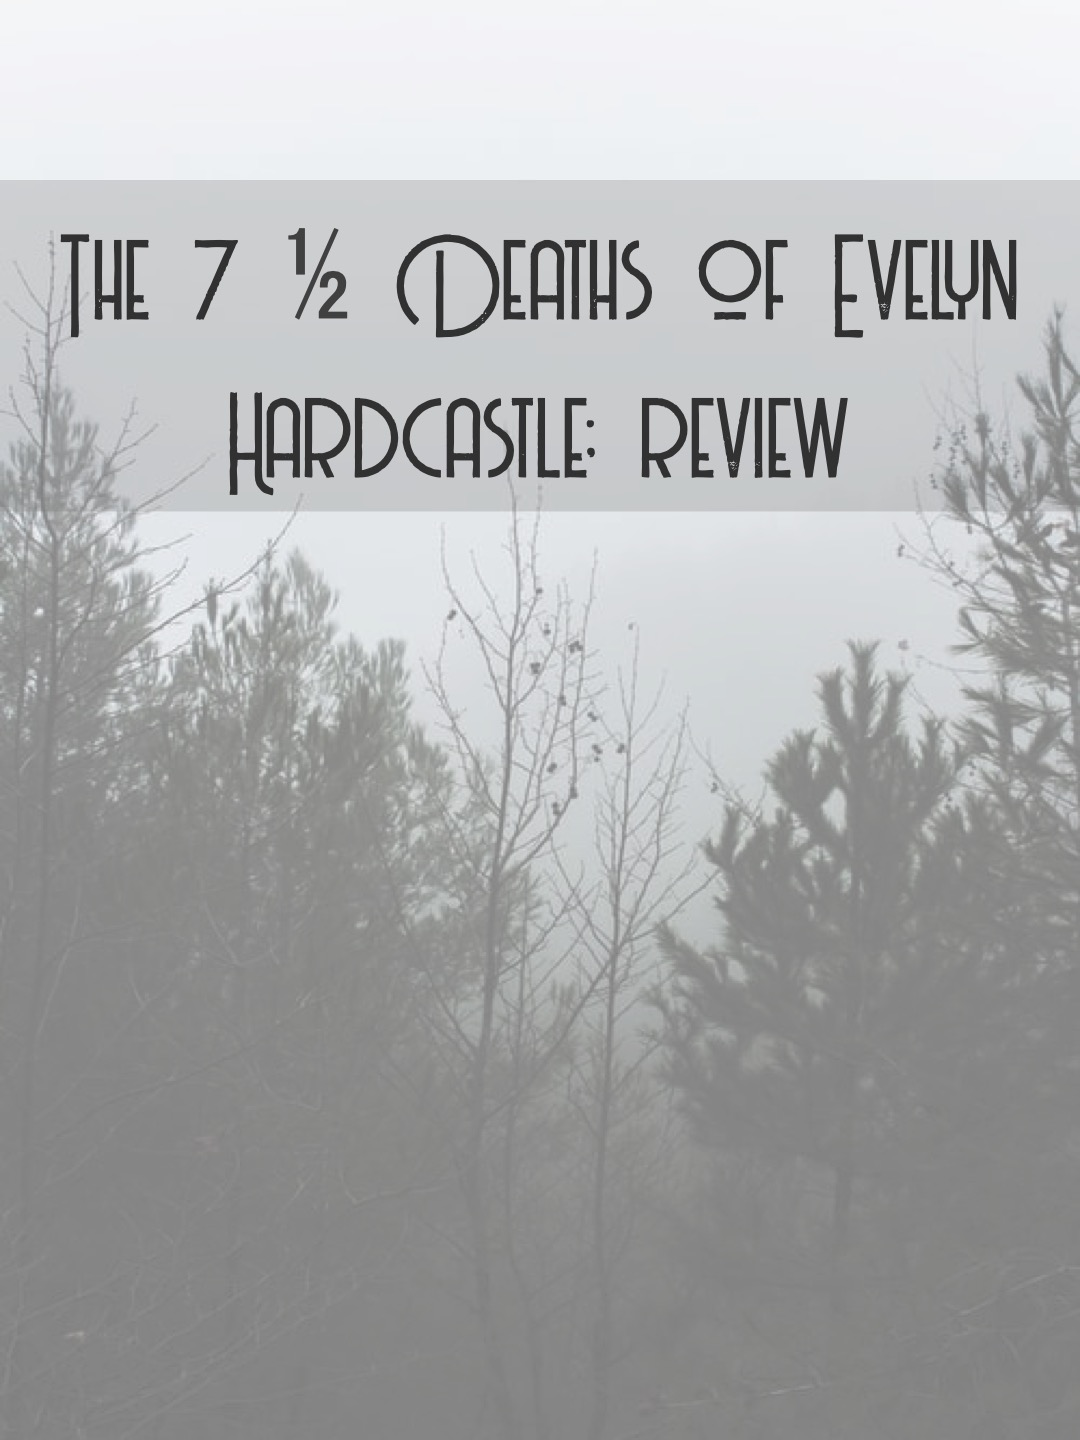 The 7 1/2 Deaths of Evelyn Hardcastle: a review